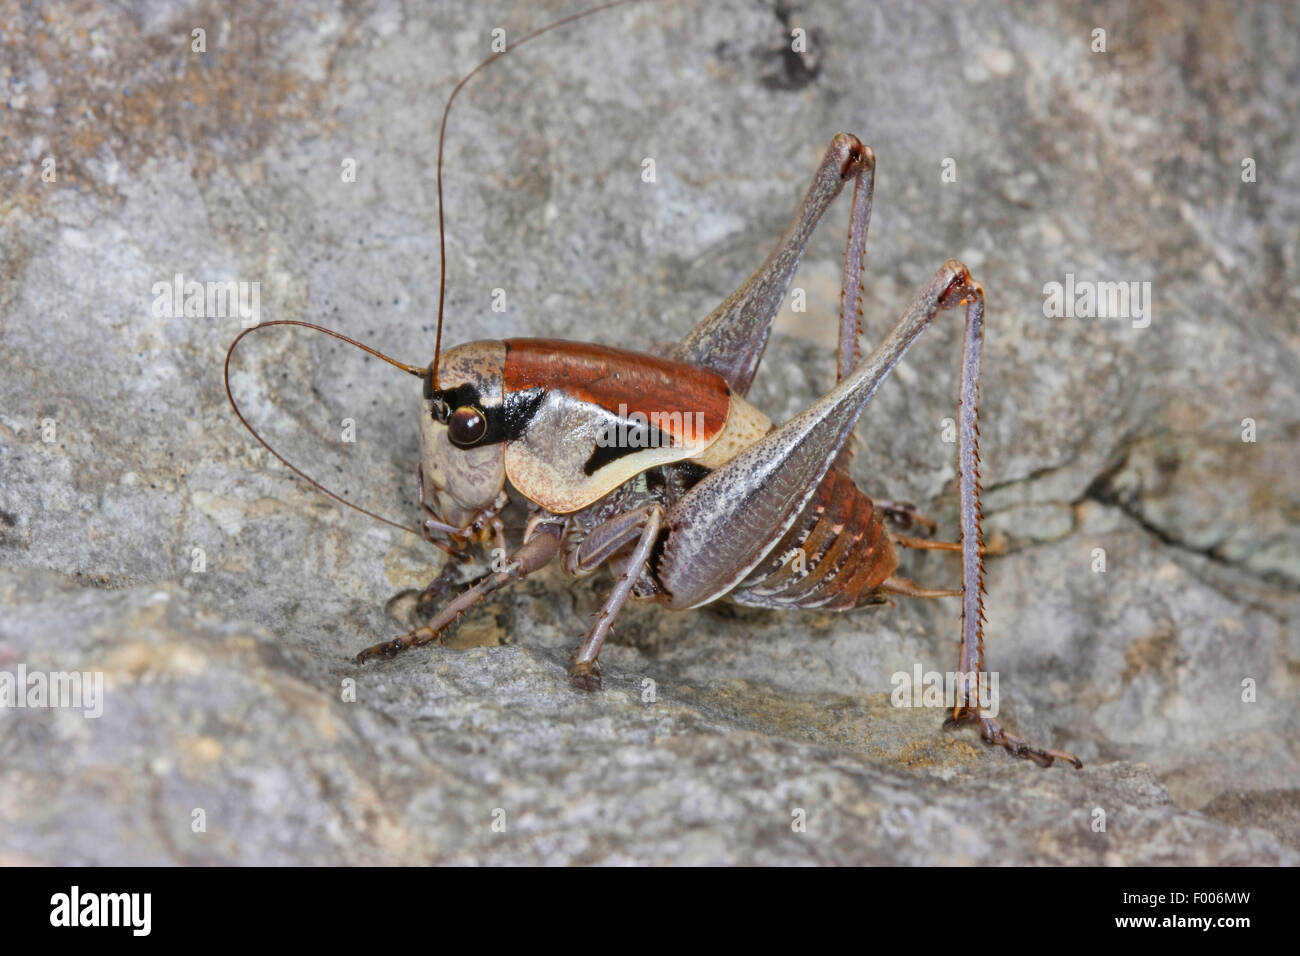 Bushcricket littoral dalmate, The Bush-cricket, cricket Bush sombre dalmates (Pholidoptera dalmatica), assis sur Photo Stock